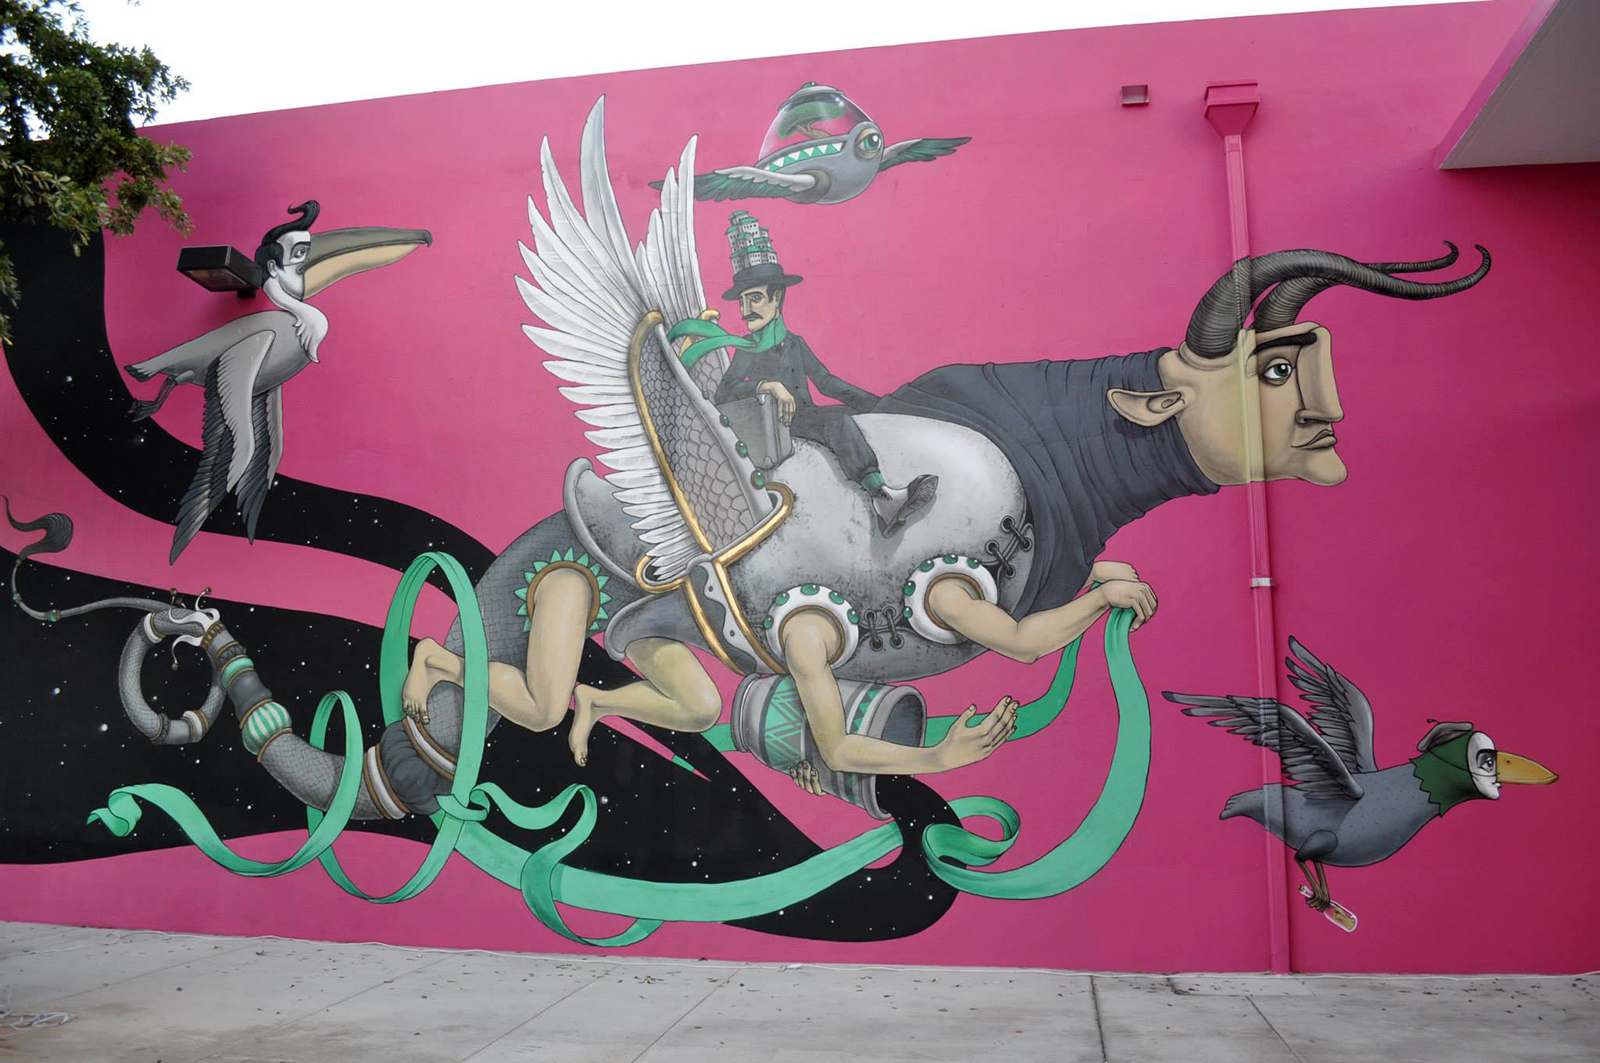 kislow-new-mural-in-wynwood-miami-01